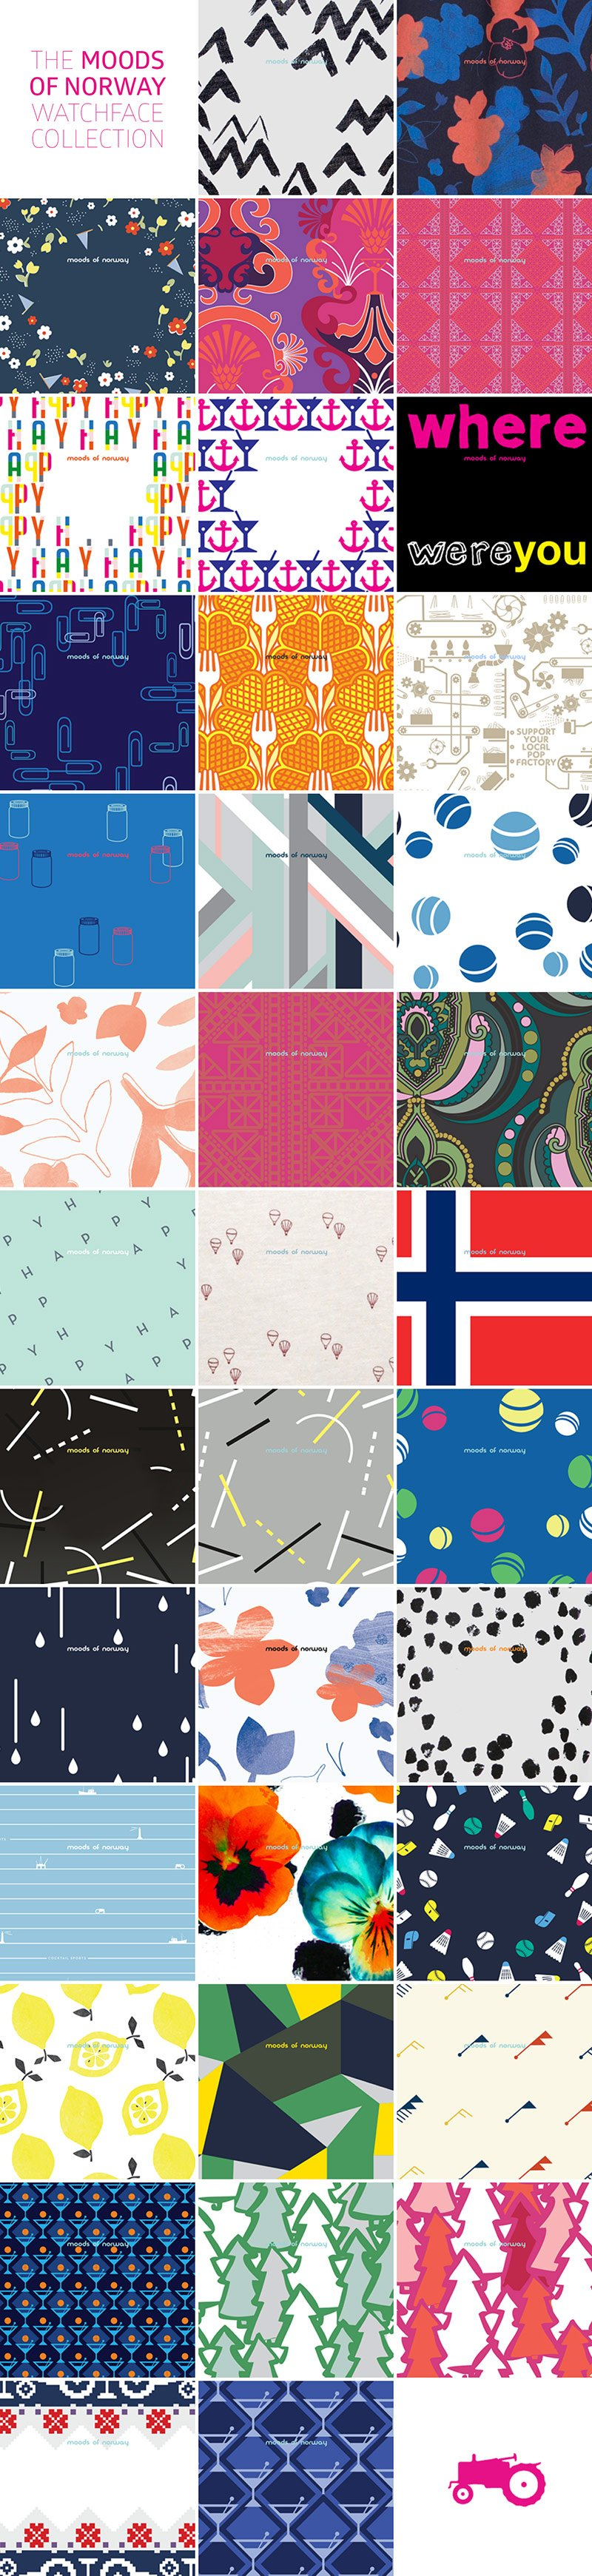 Design by Moods of Norway